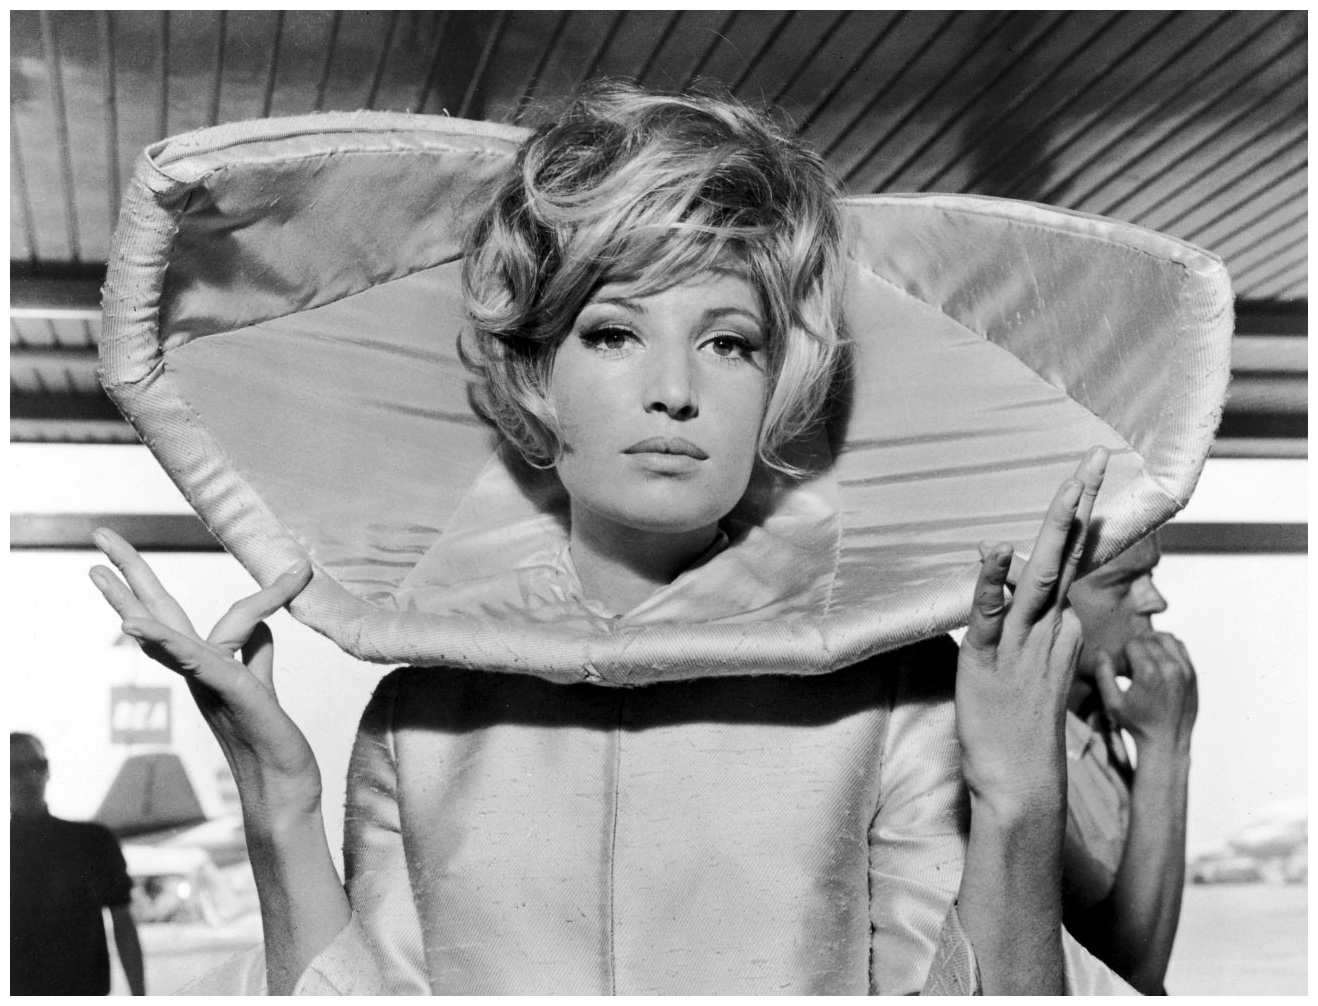 Monica Vitti in a scene from the film 'Modesty Blaise', 1966.